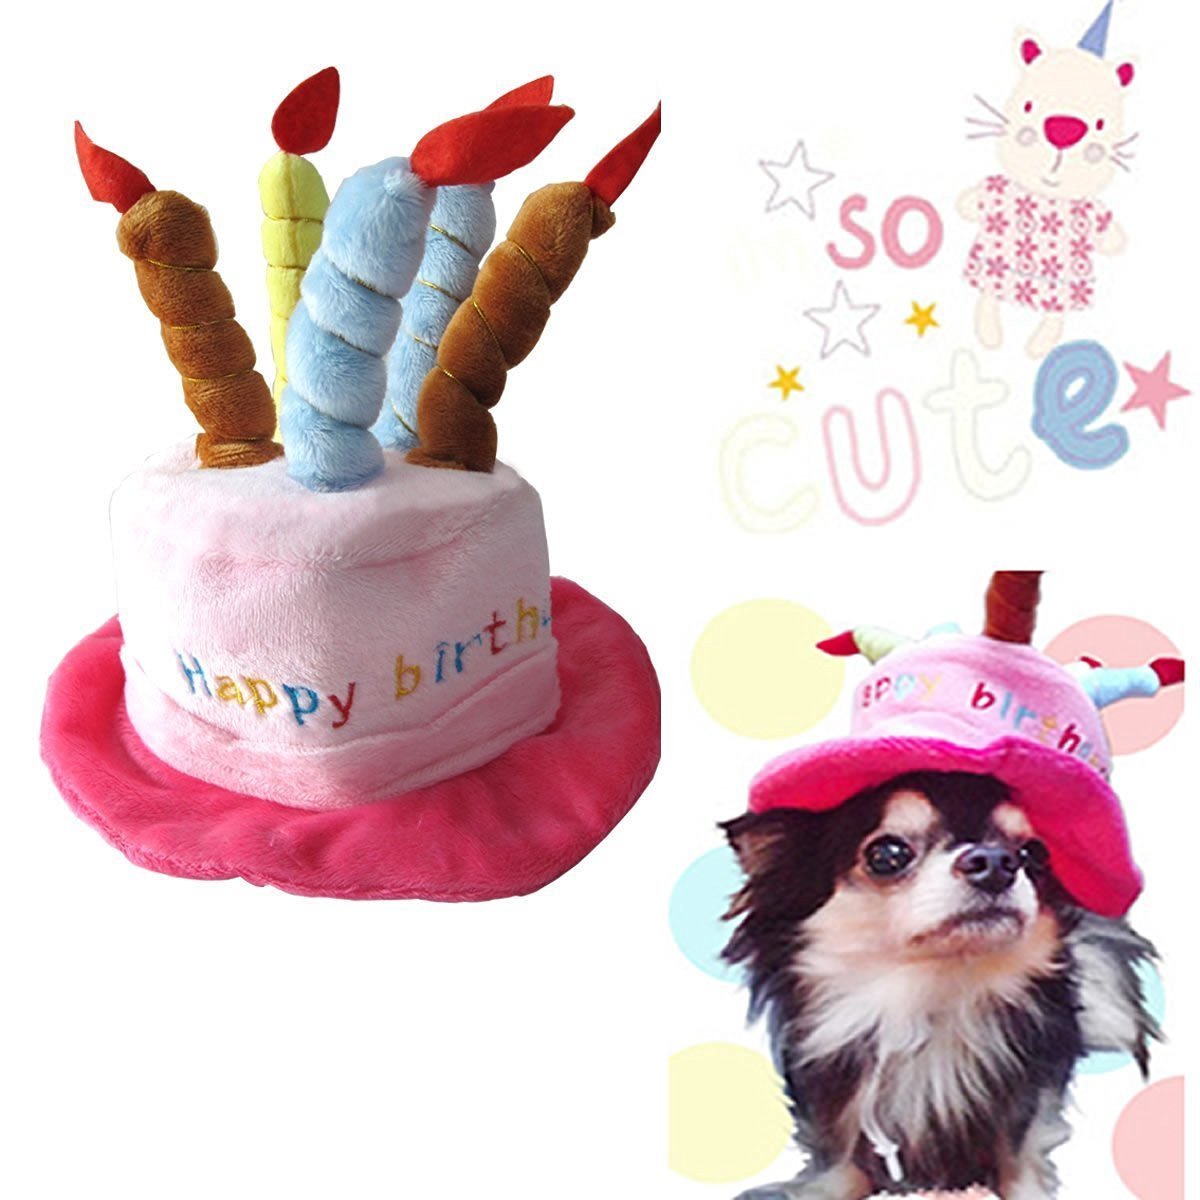 Lanyarco Universal Dog Birthday Hats Gift With Cake And Candles For Puppy Small Cats Dogs Pink